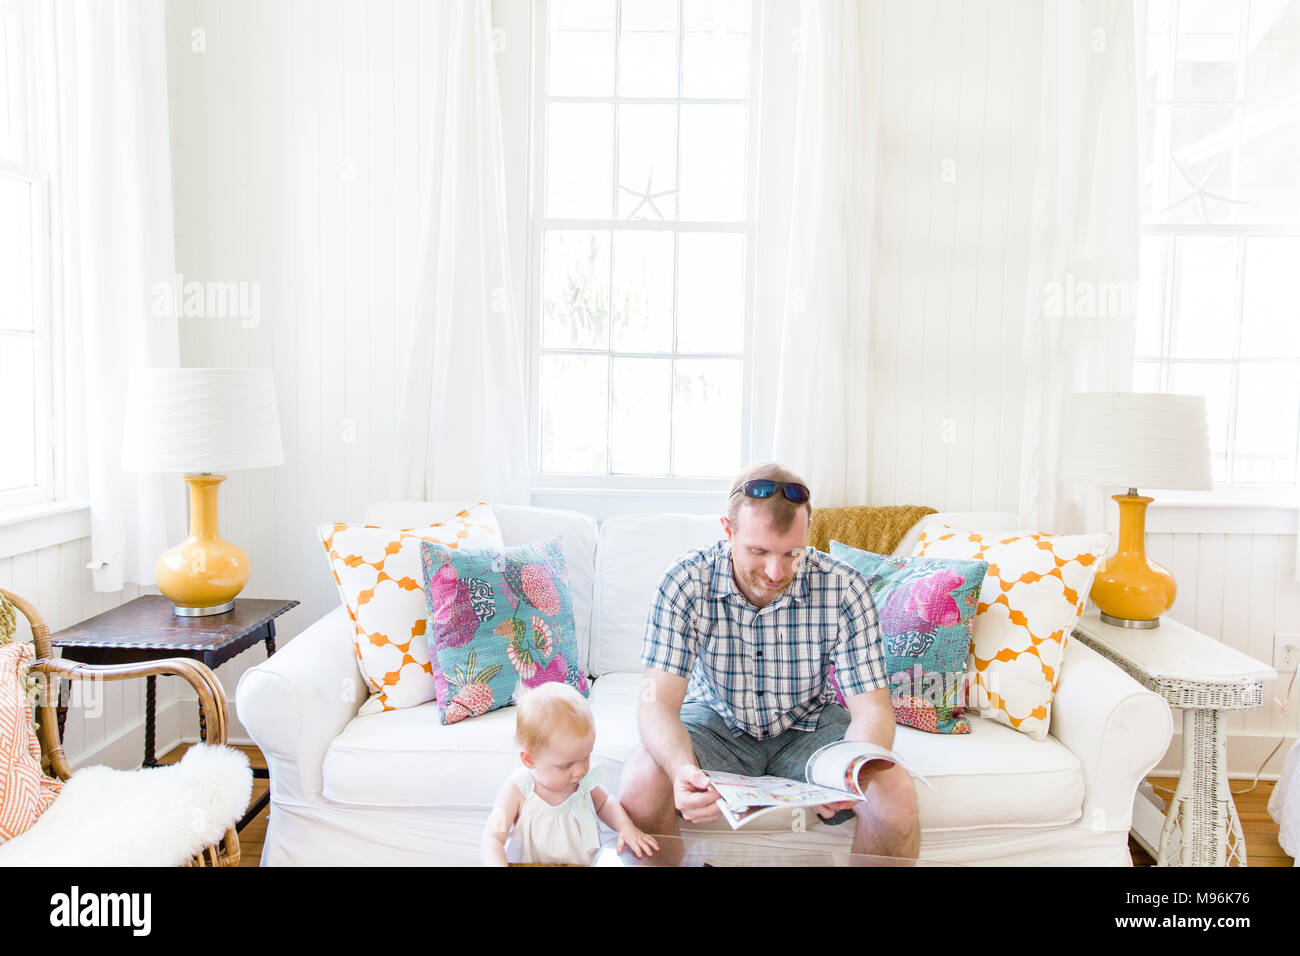 Man with sunglasses reading next to baby - Stock Image